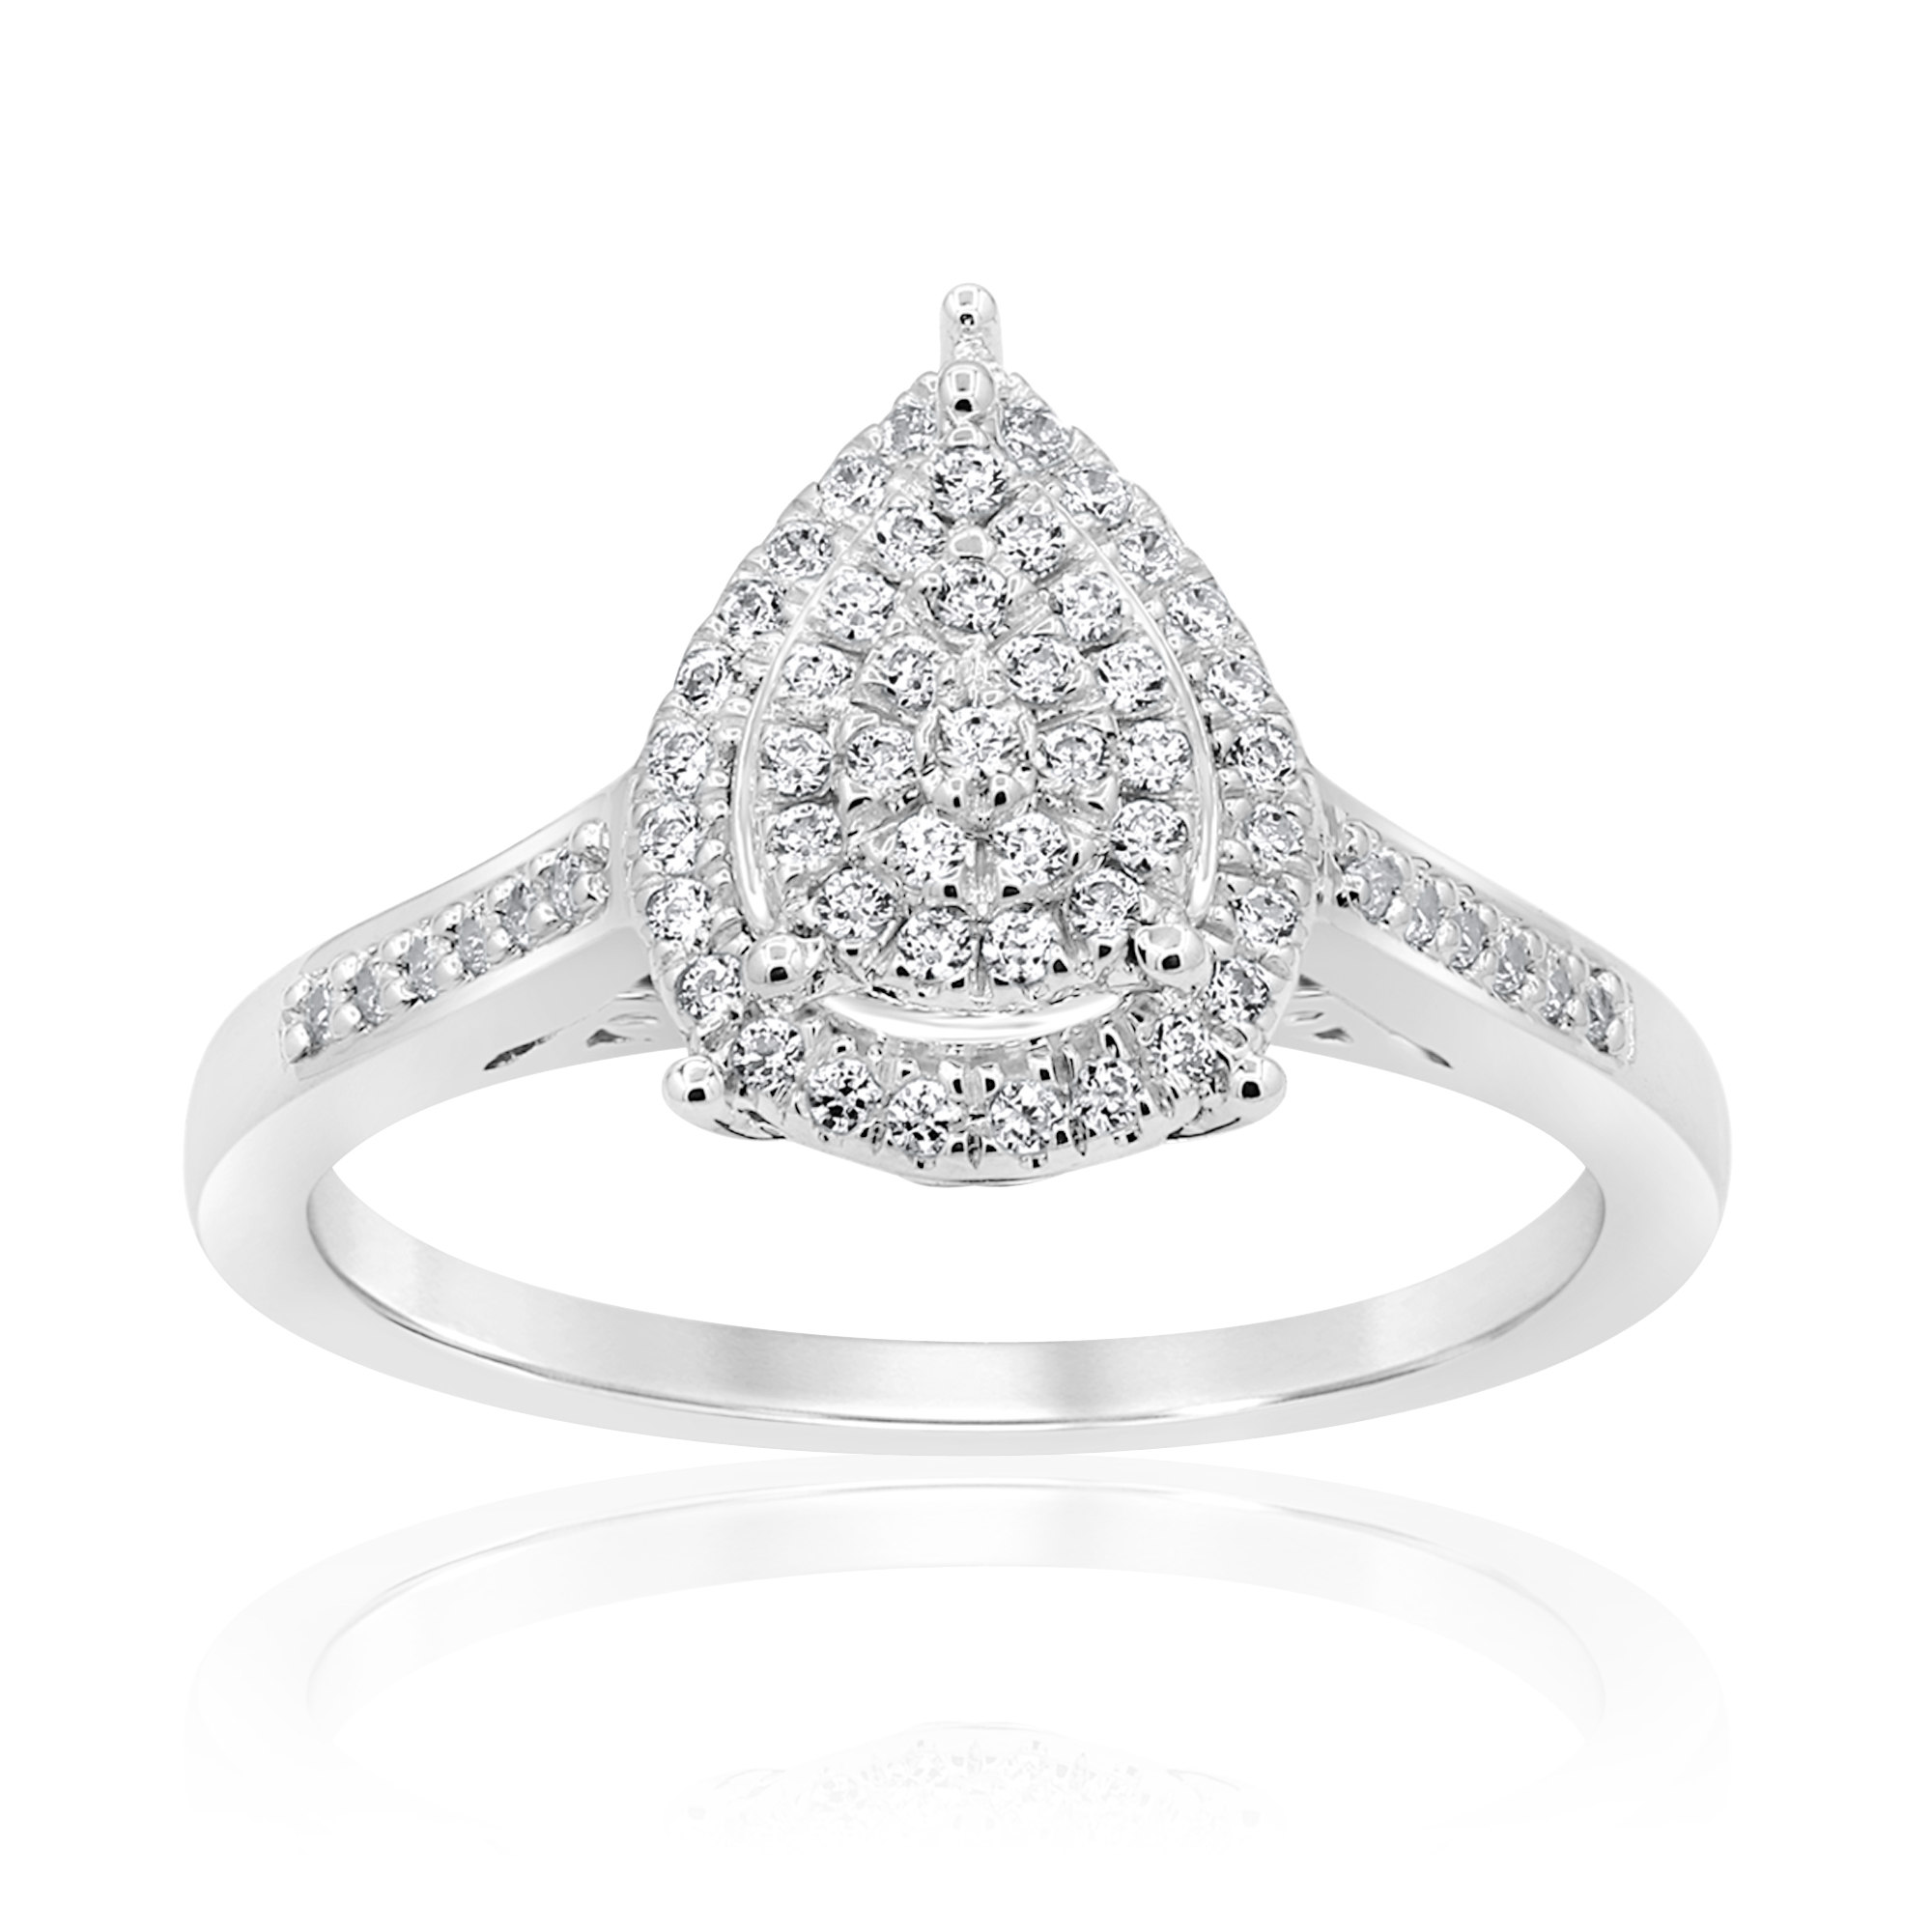 Sterling Silver 1/4 Carat Pear Shap Diamond Dress Ring